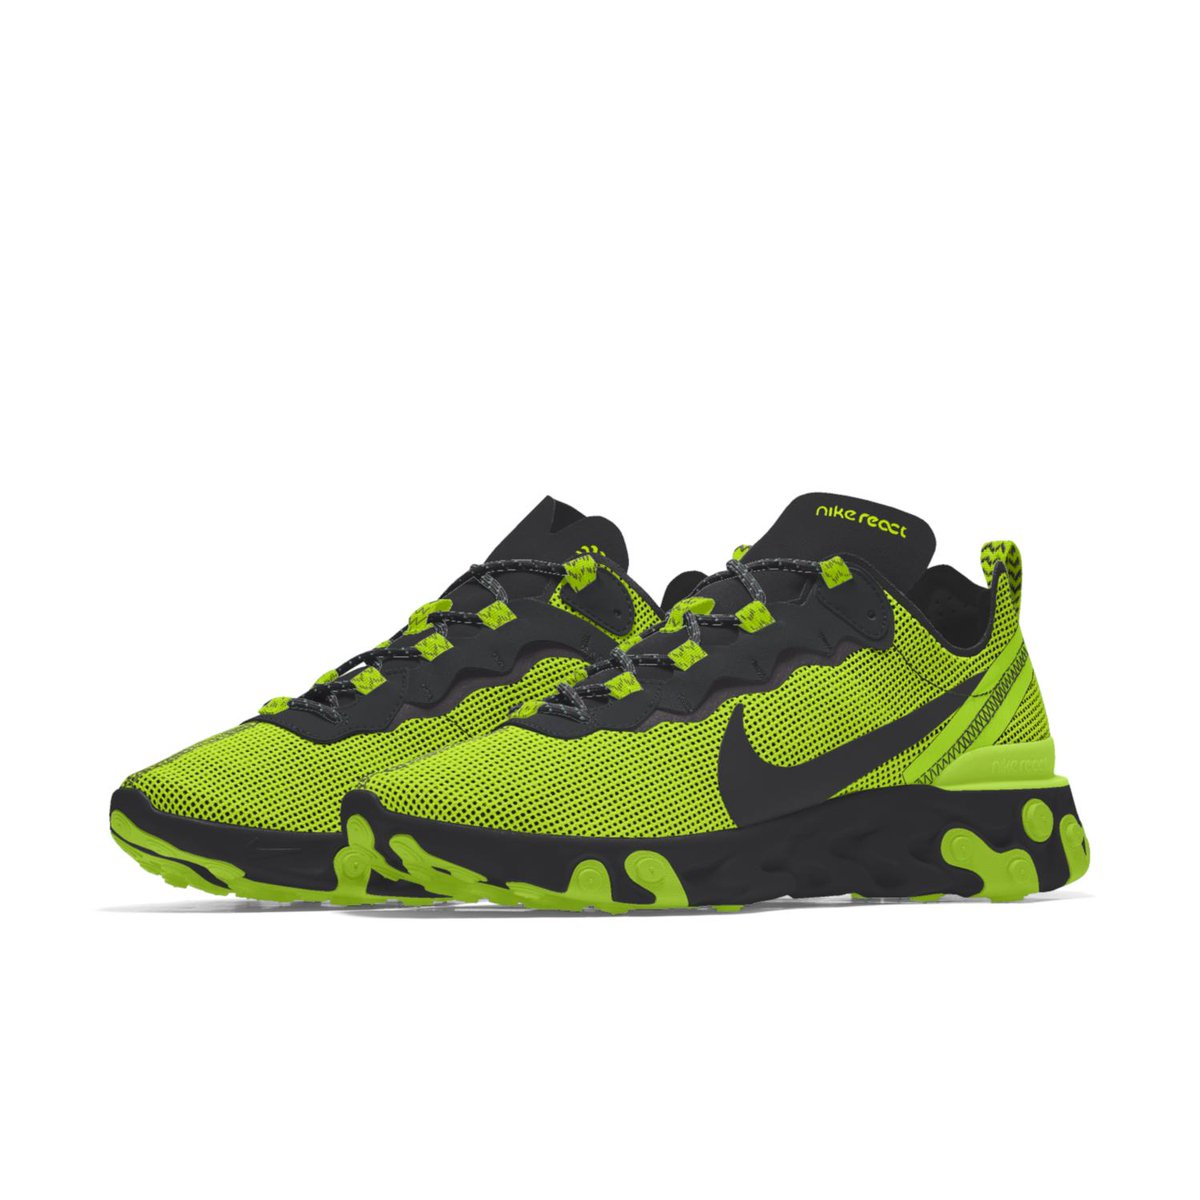 dcce356c04326 ... Nike React Element 55 featuring premium materials from Nike CA for  230  + free shipping and returns! https   bit.ly 2ZStzrz  pic.twitter.com tdHpUfSBKy